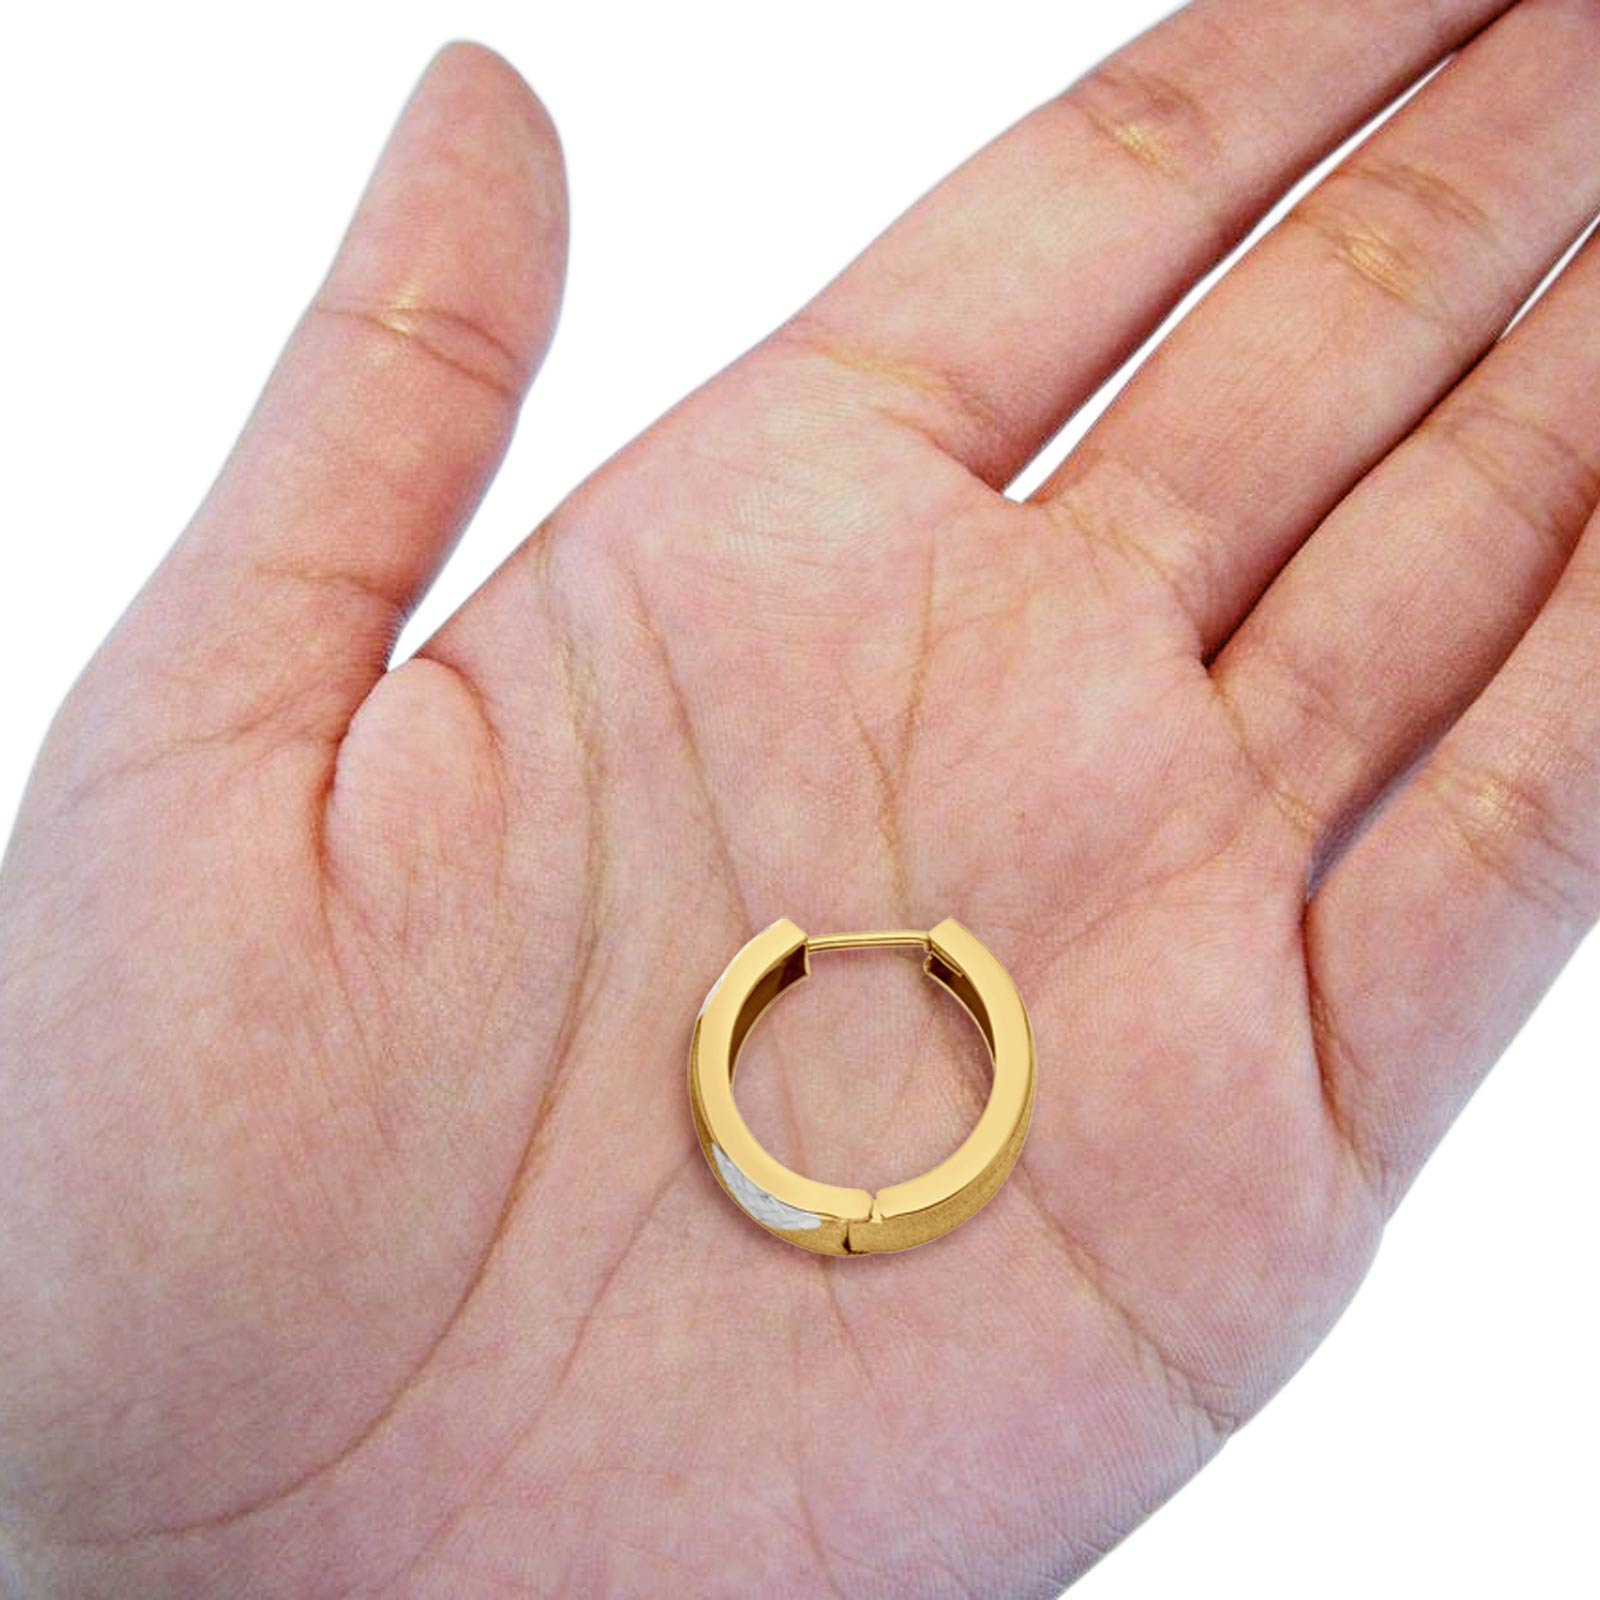 Real Lovely 14K Two Tone Gold 5mm Huggies Earrings Hinged 2.2grams 15mm